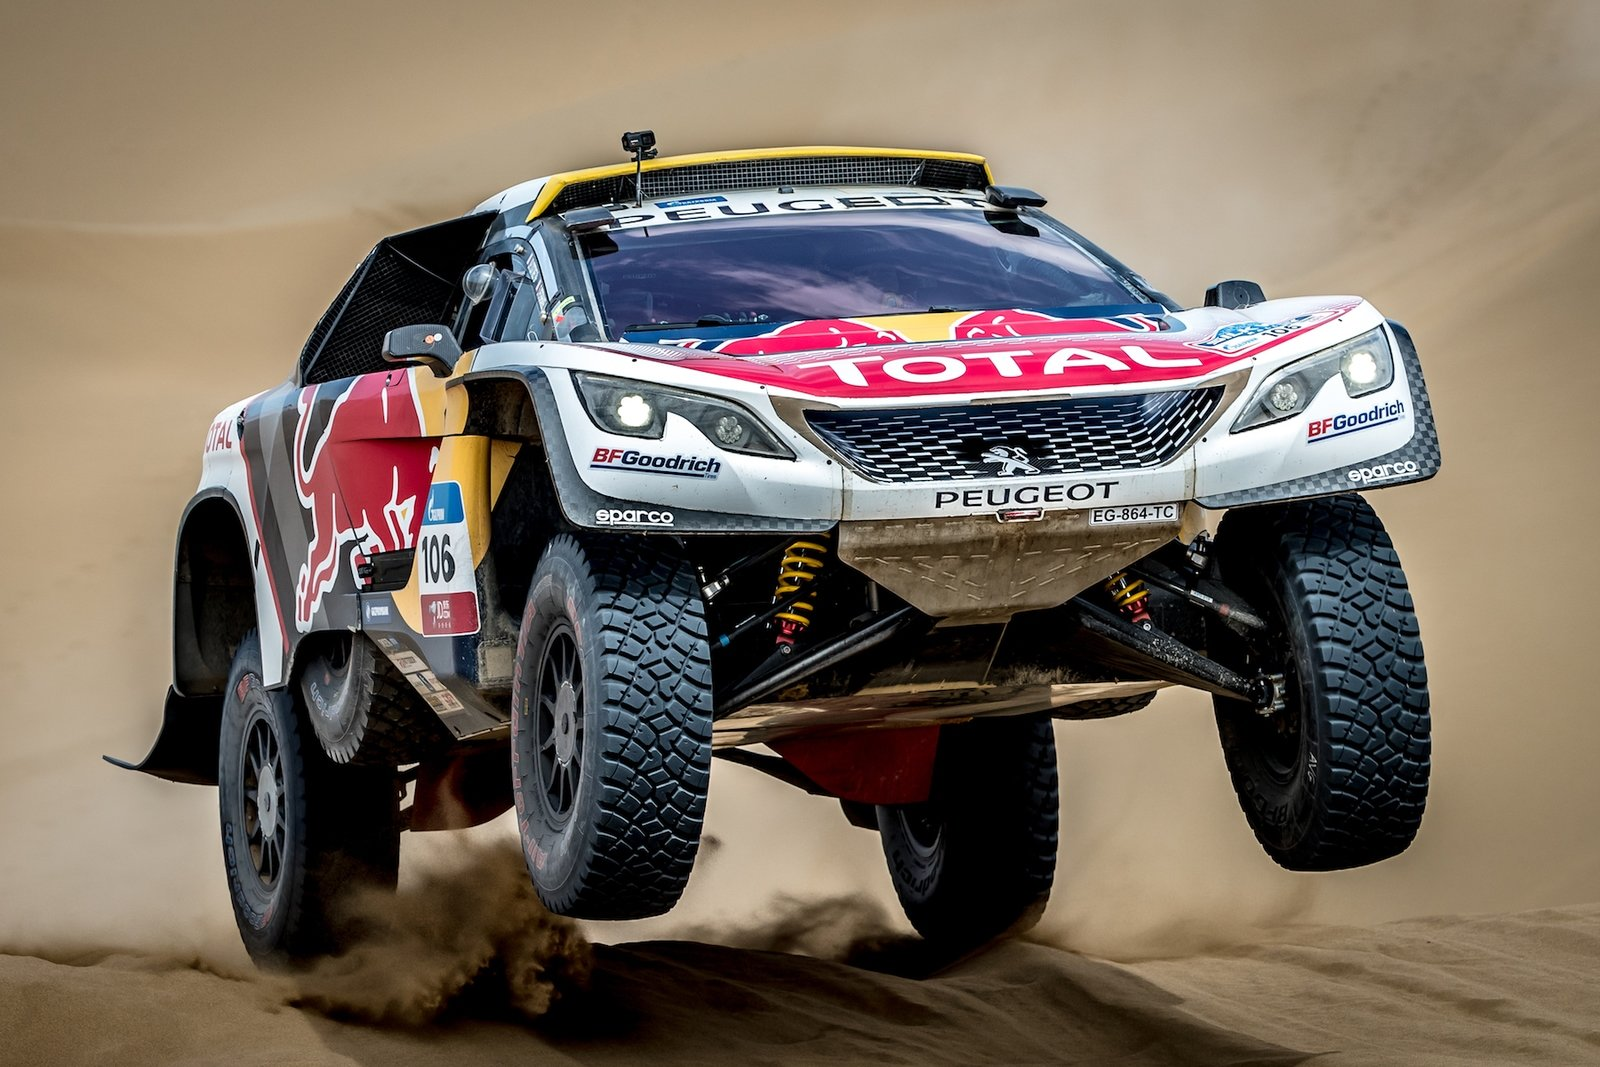 2018 peugeot 3008 dkr maxi review top speed. Black Bedroom Furniture Sets. Home Design Ideas